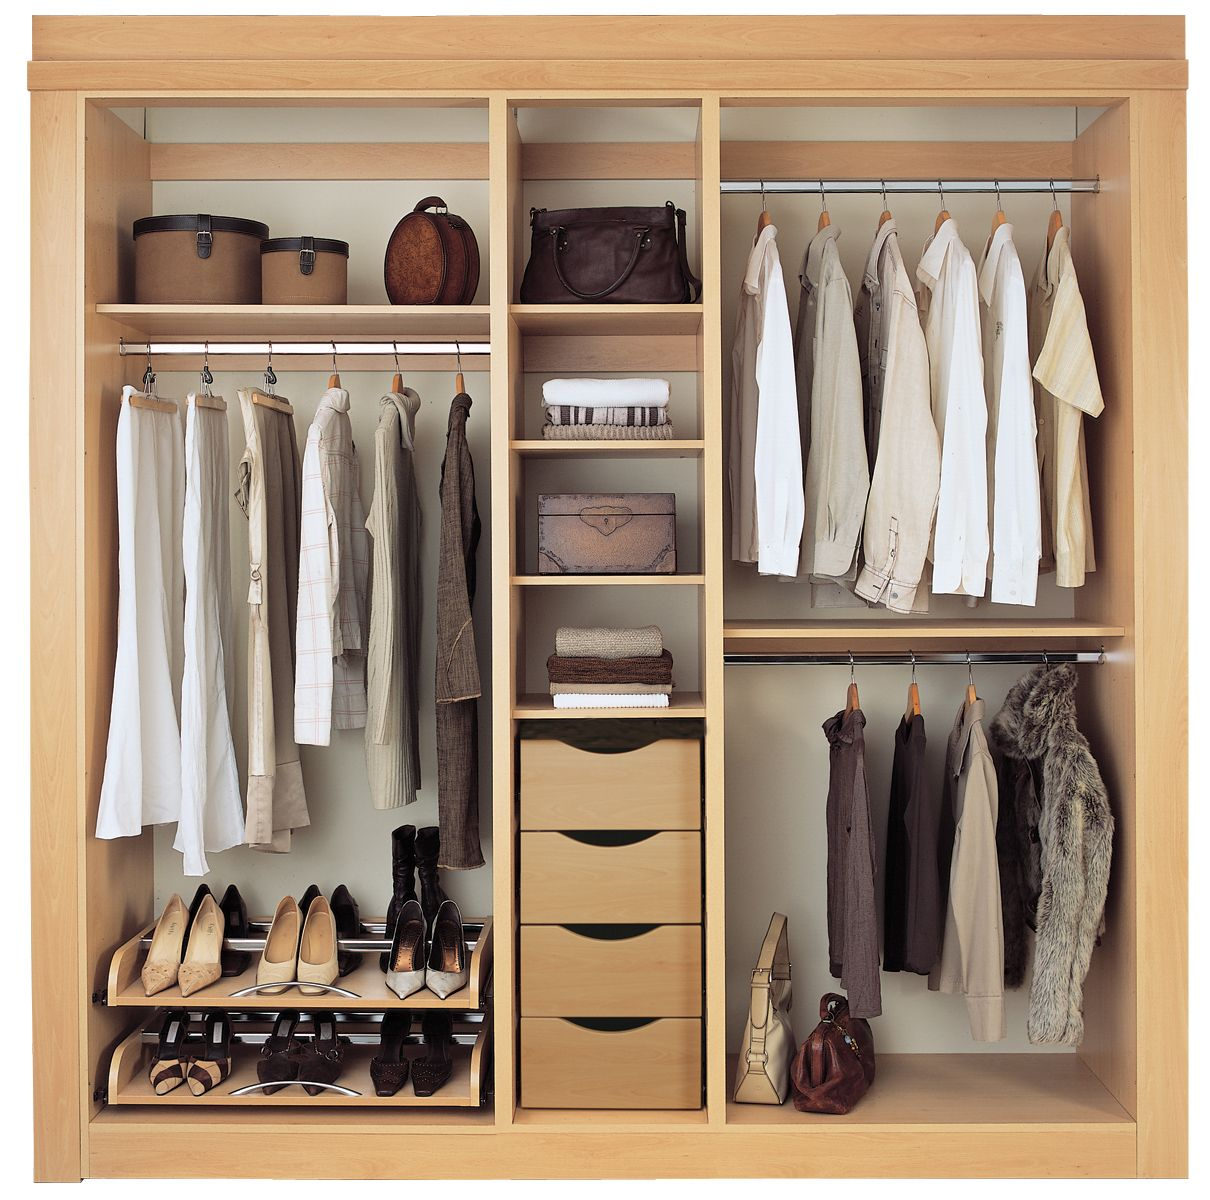 Drawers design is different and unique built in storage Short wardrobe with drawers